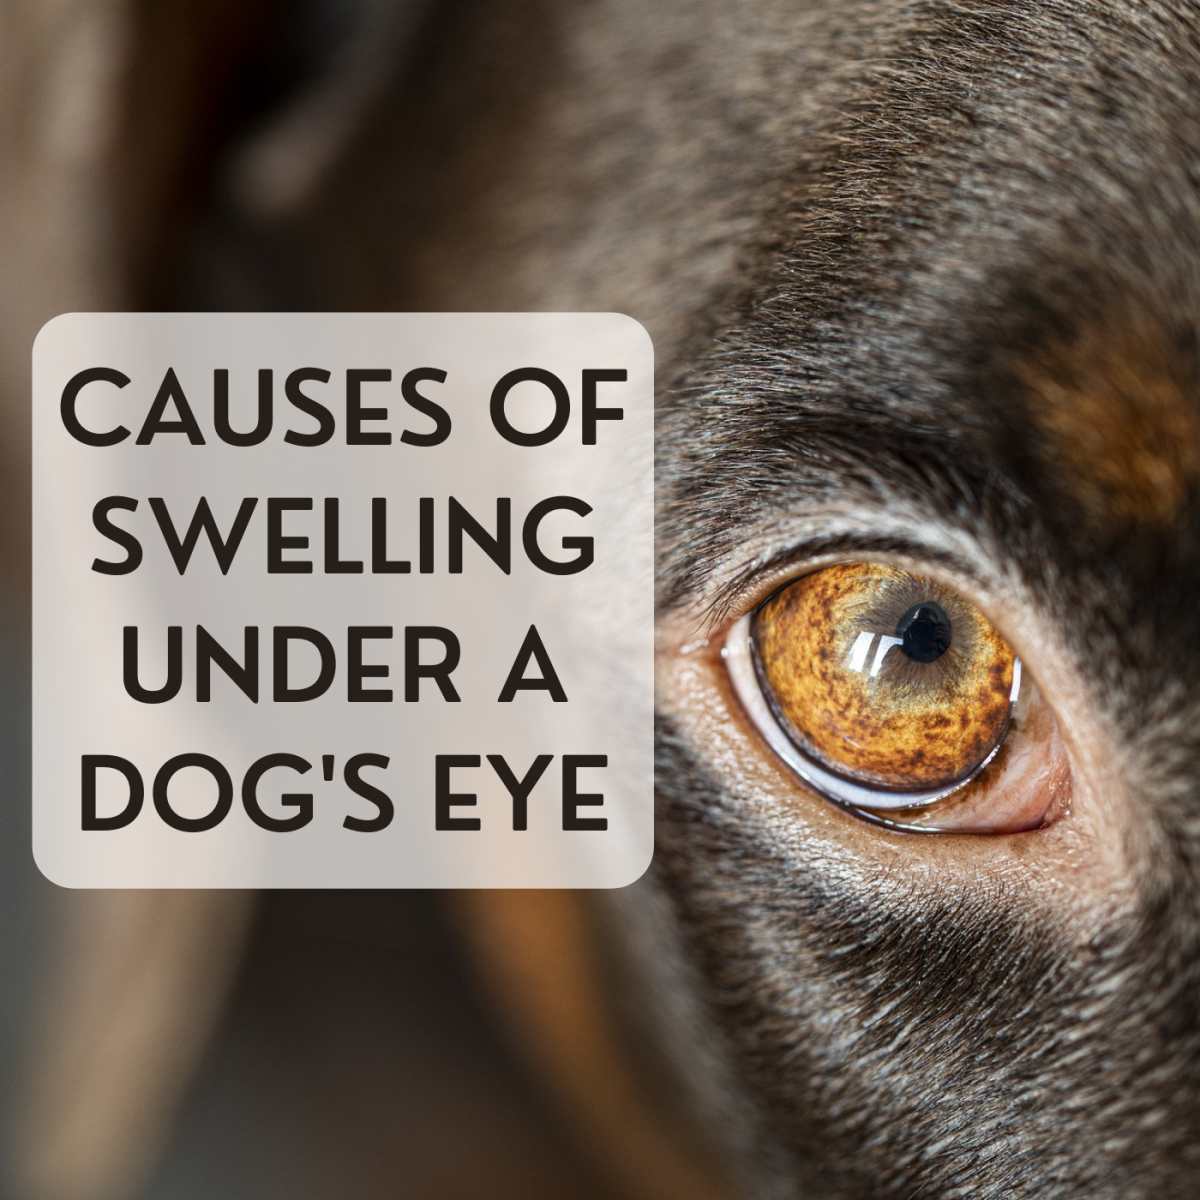 Learn more about the carnassial tooth and how it can cause swelling beneath a dog's eye.